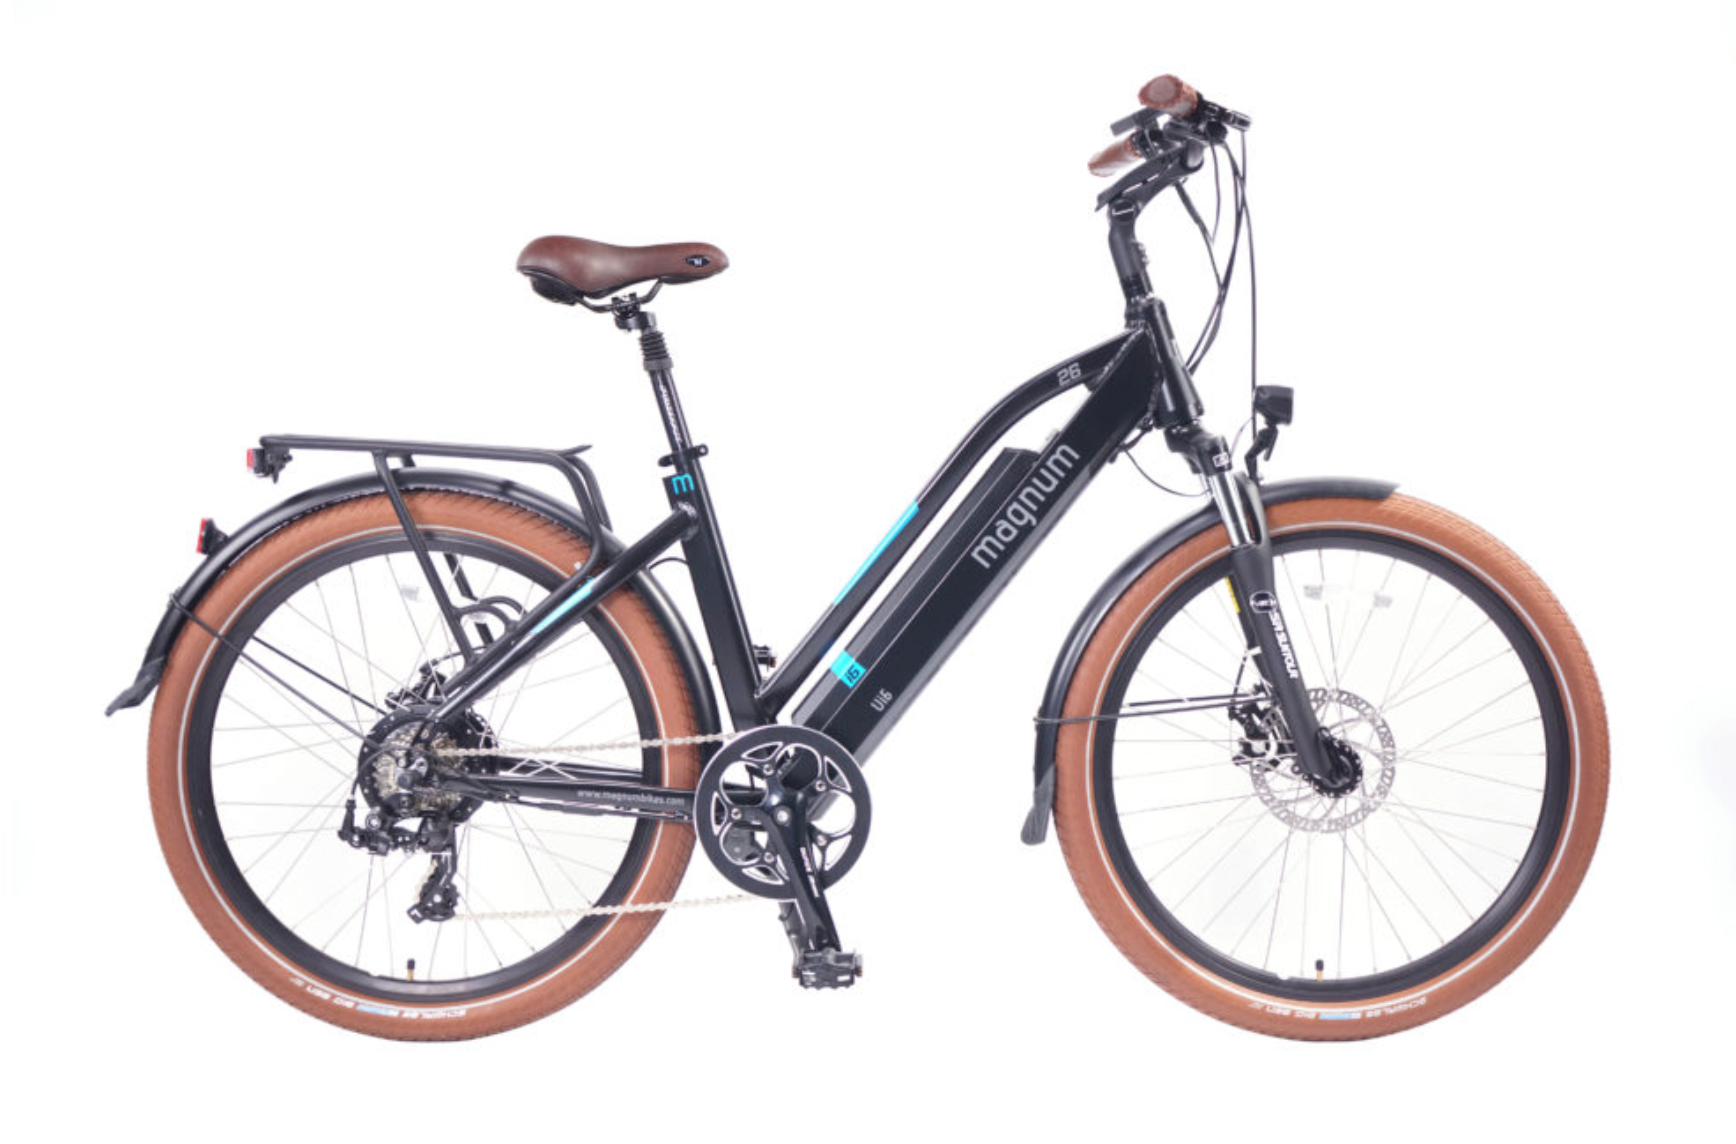 UI6-MW Black E-Bike 48v